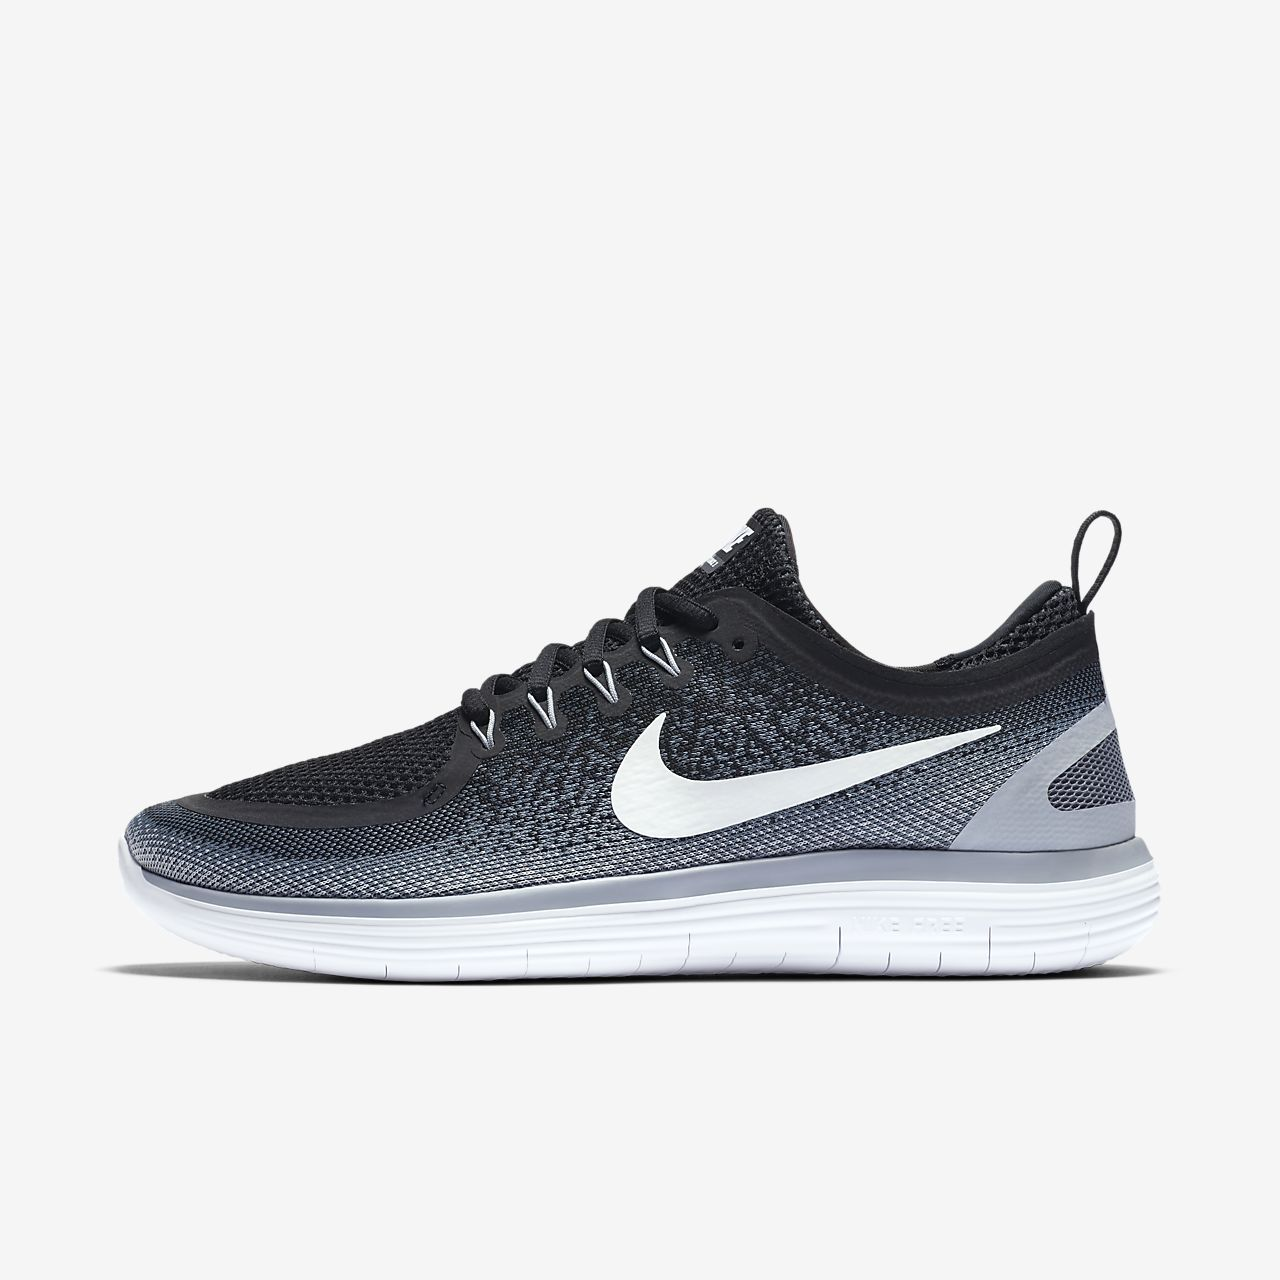 free run distance 2 running shoe nike